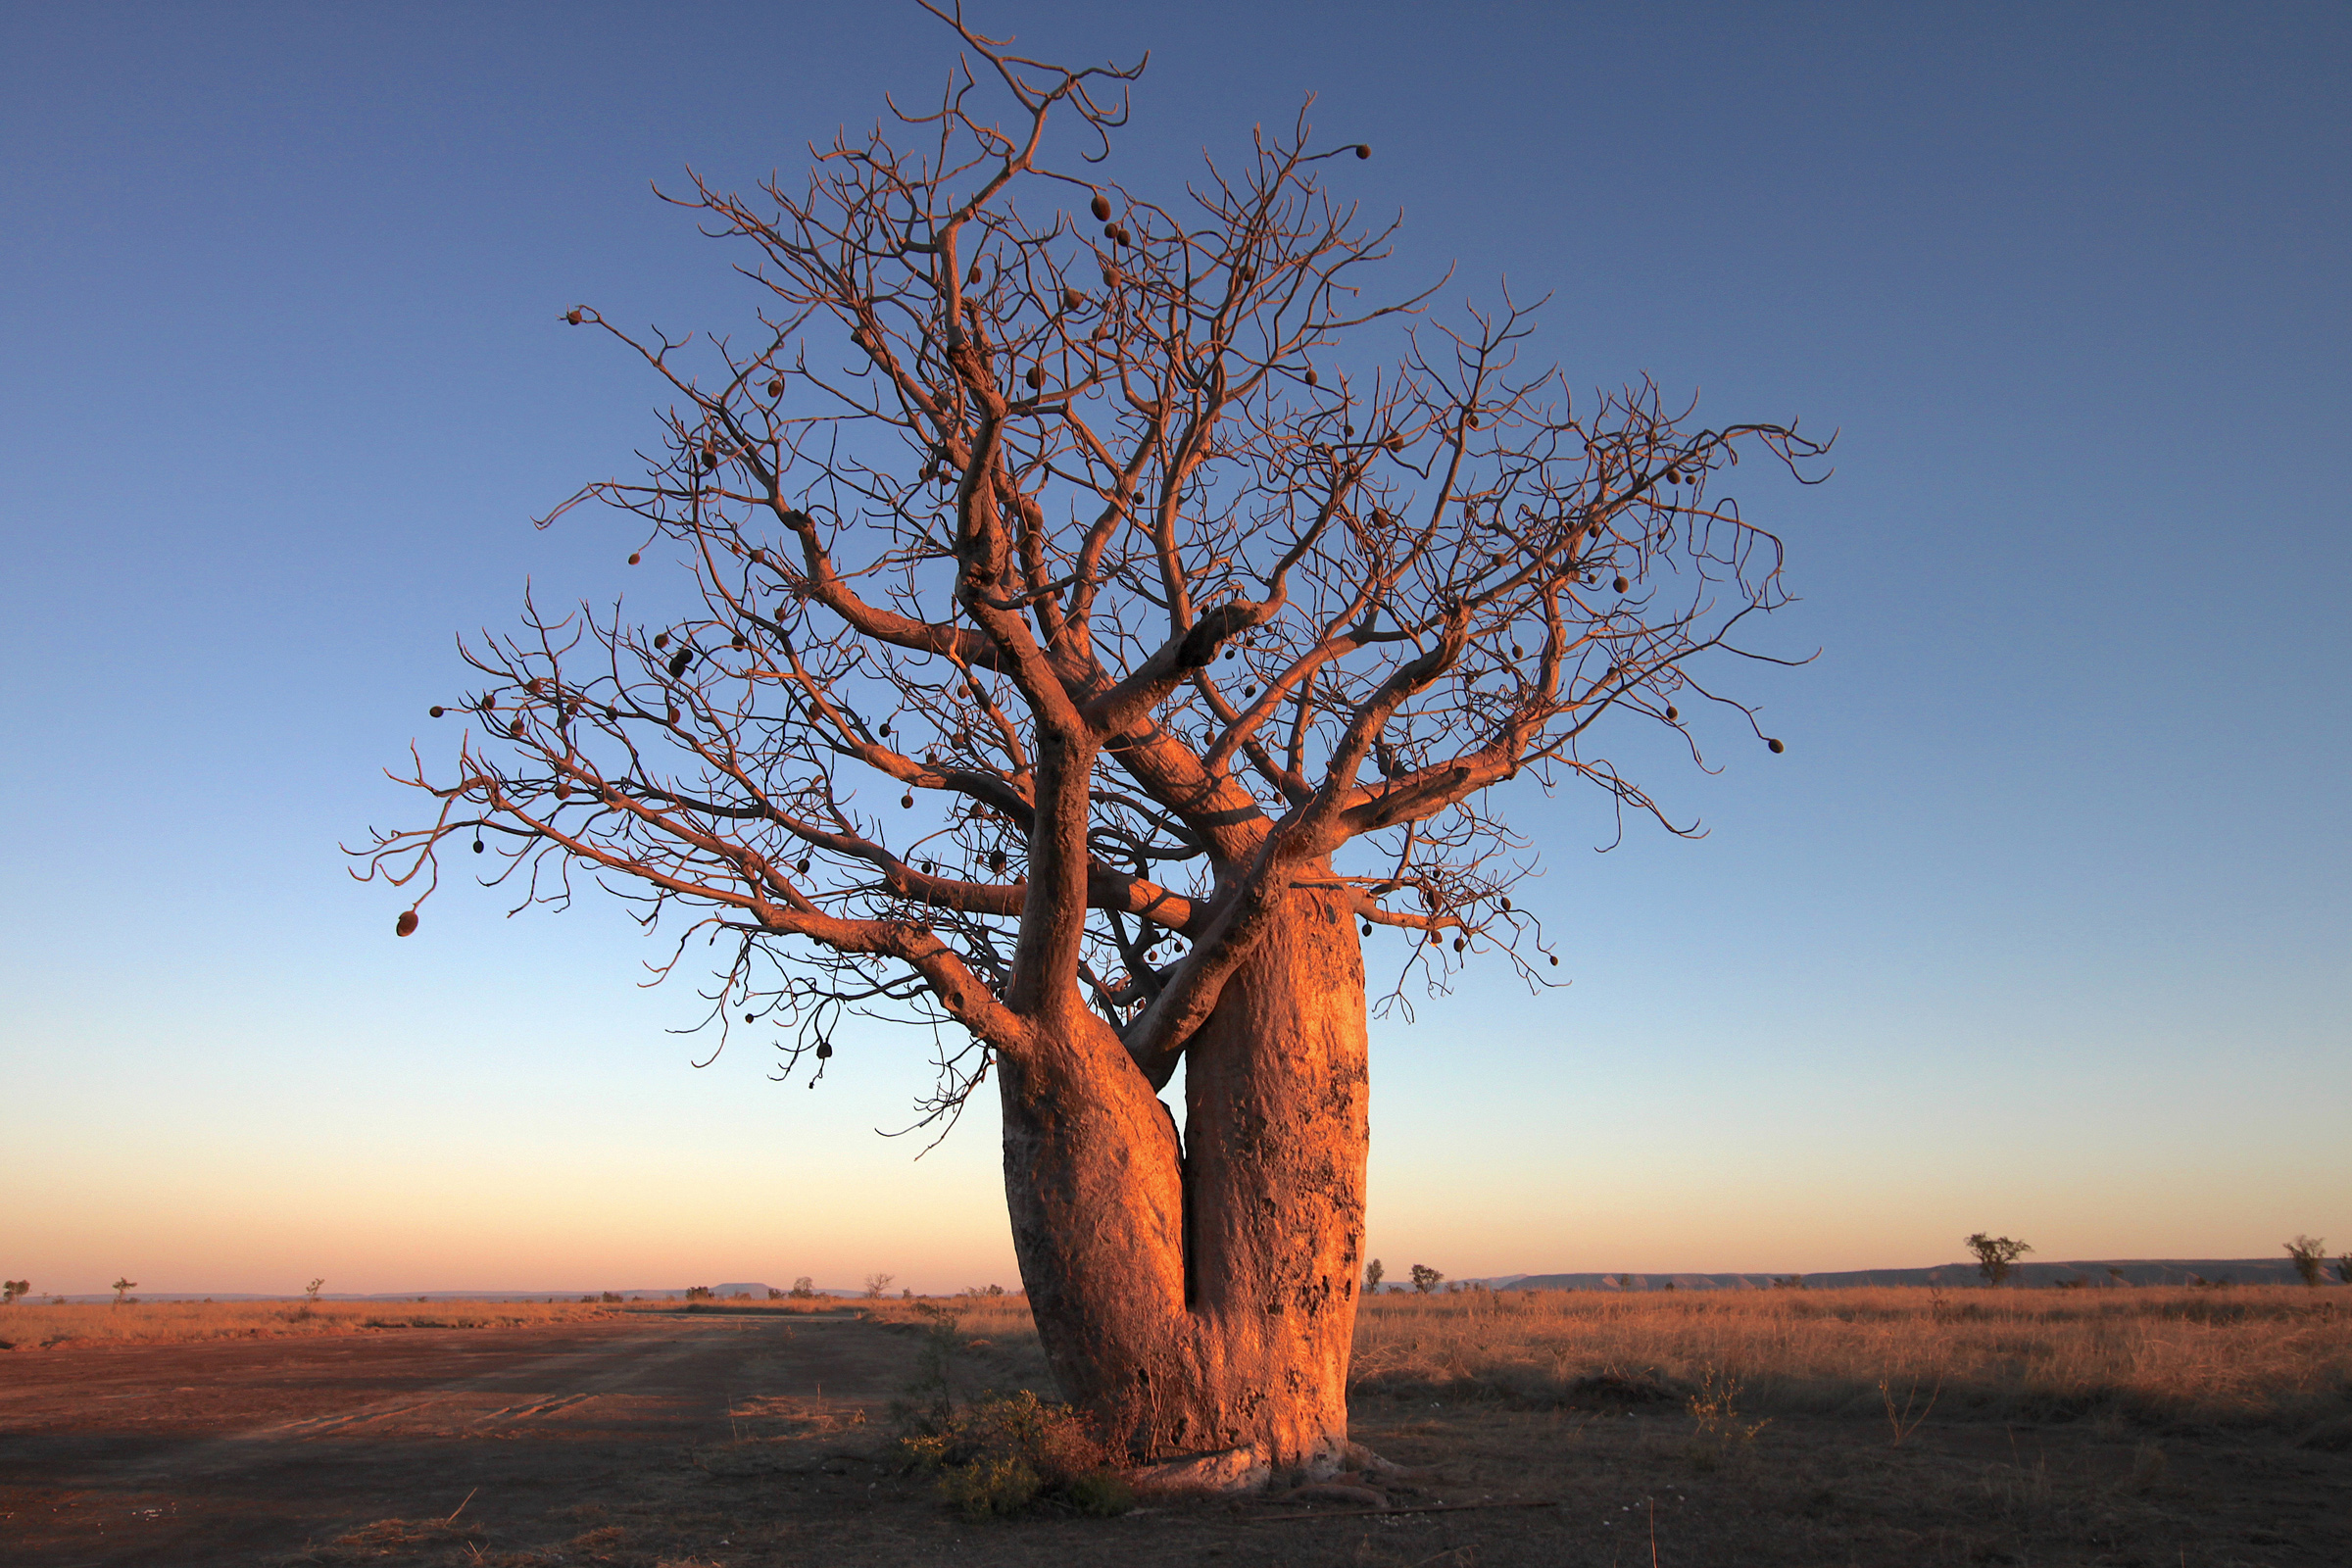 These boab trees are prolific in the region